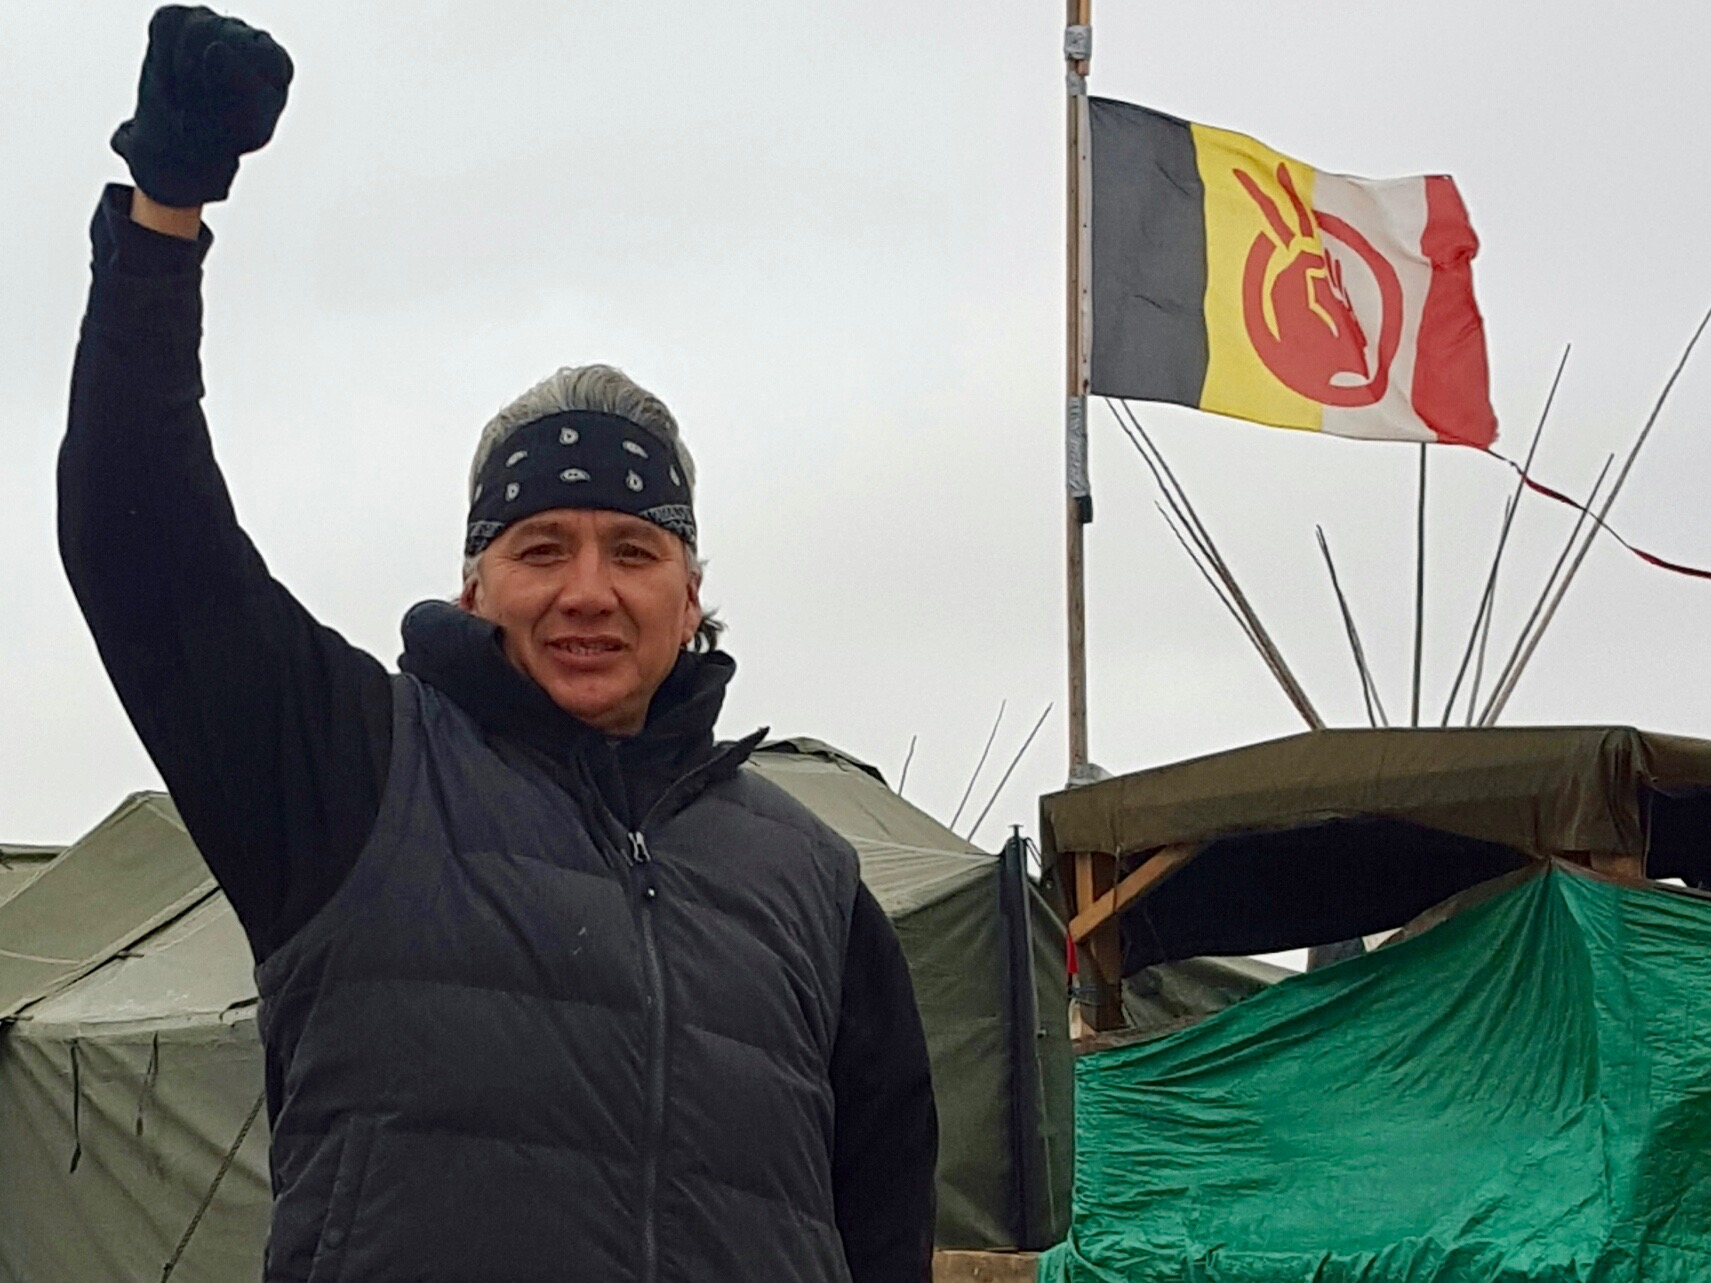 Lakota Country Times: On the #NoDAPL front line in North Dakota